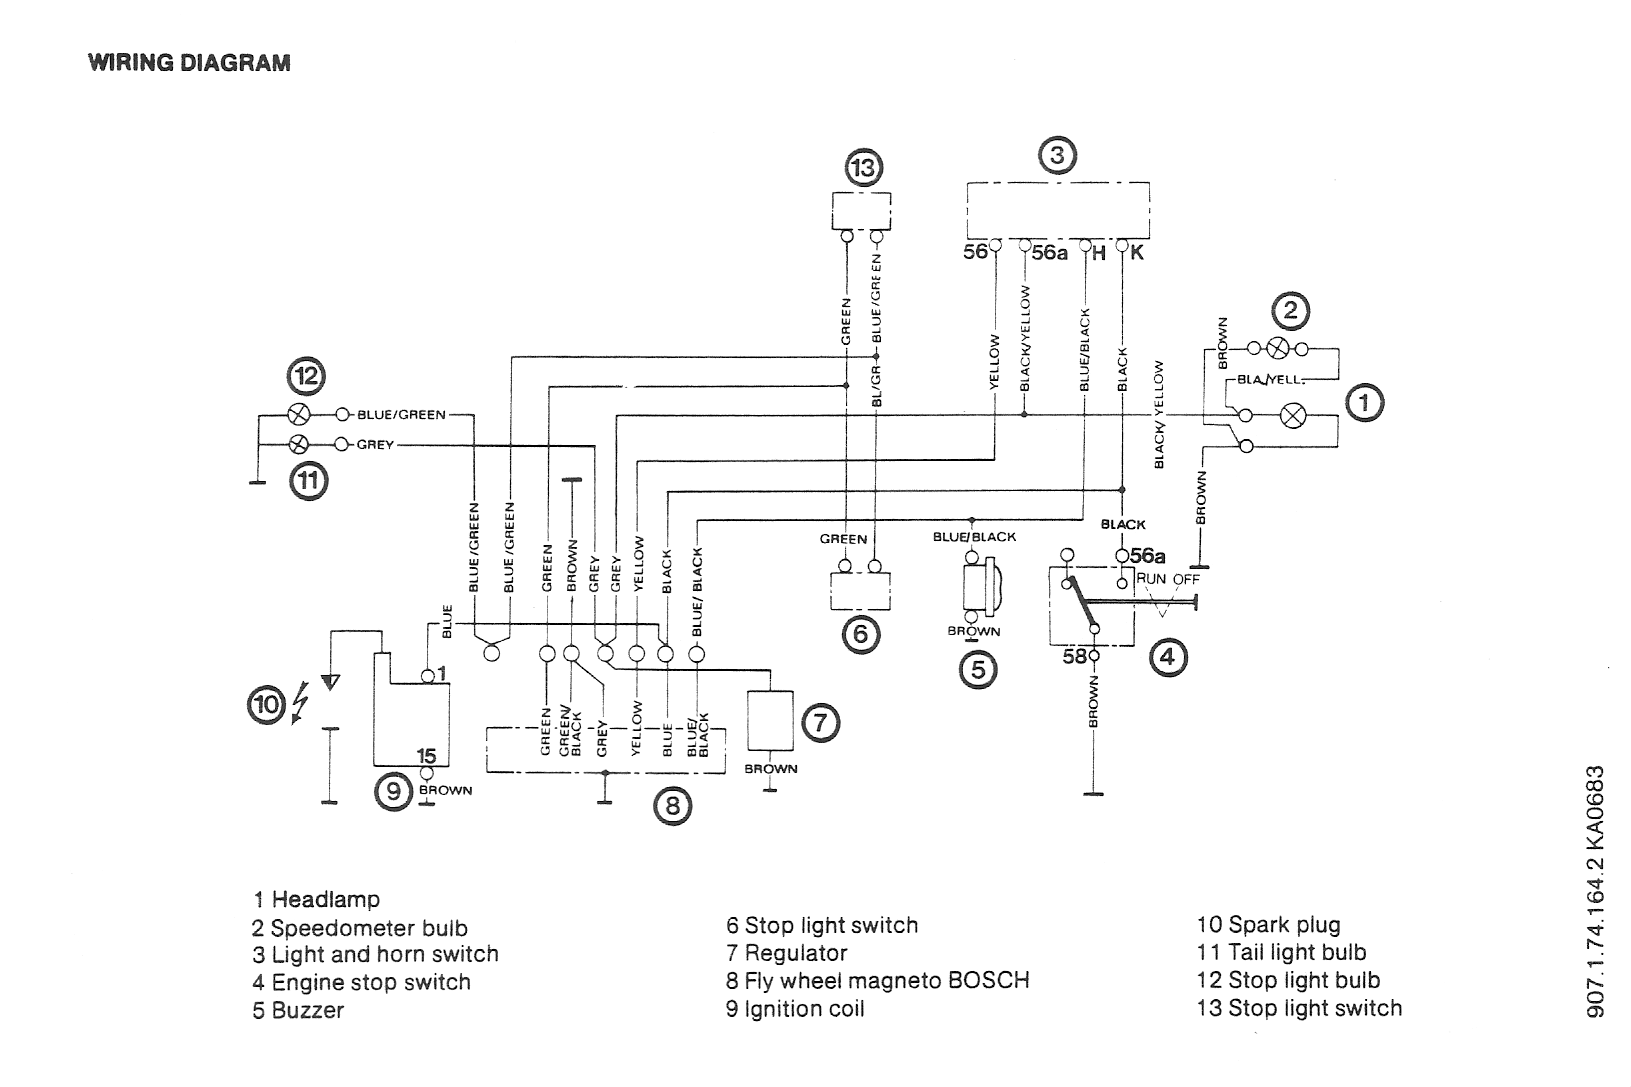 Puch_Mini_Maxi_wiring_diagram puch wiring diagrams moped wiki 1977 puch maxi wiring diagram at gsmx.co